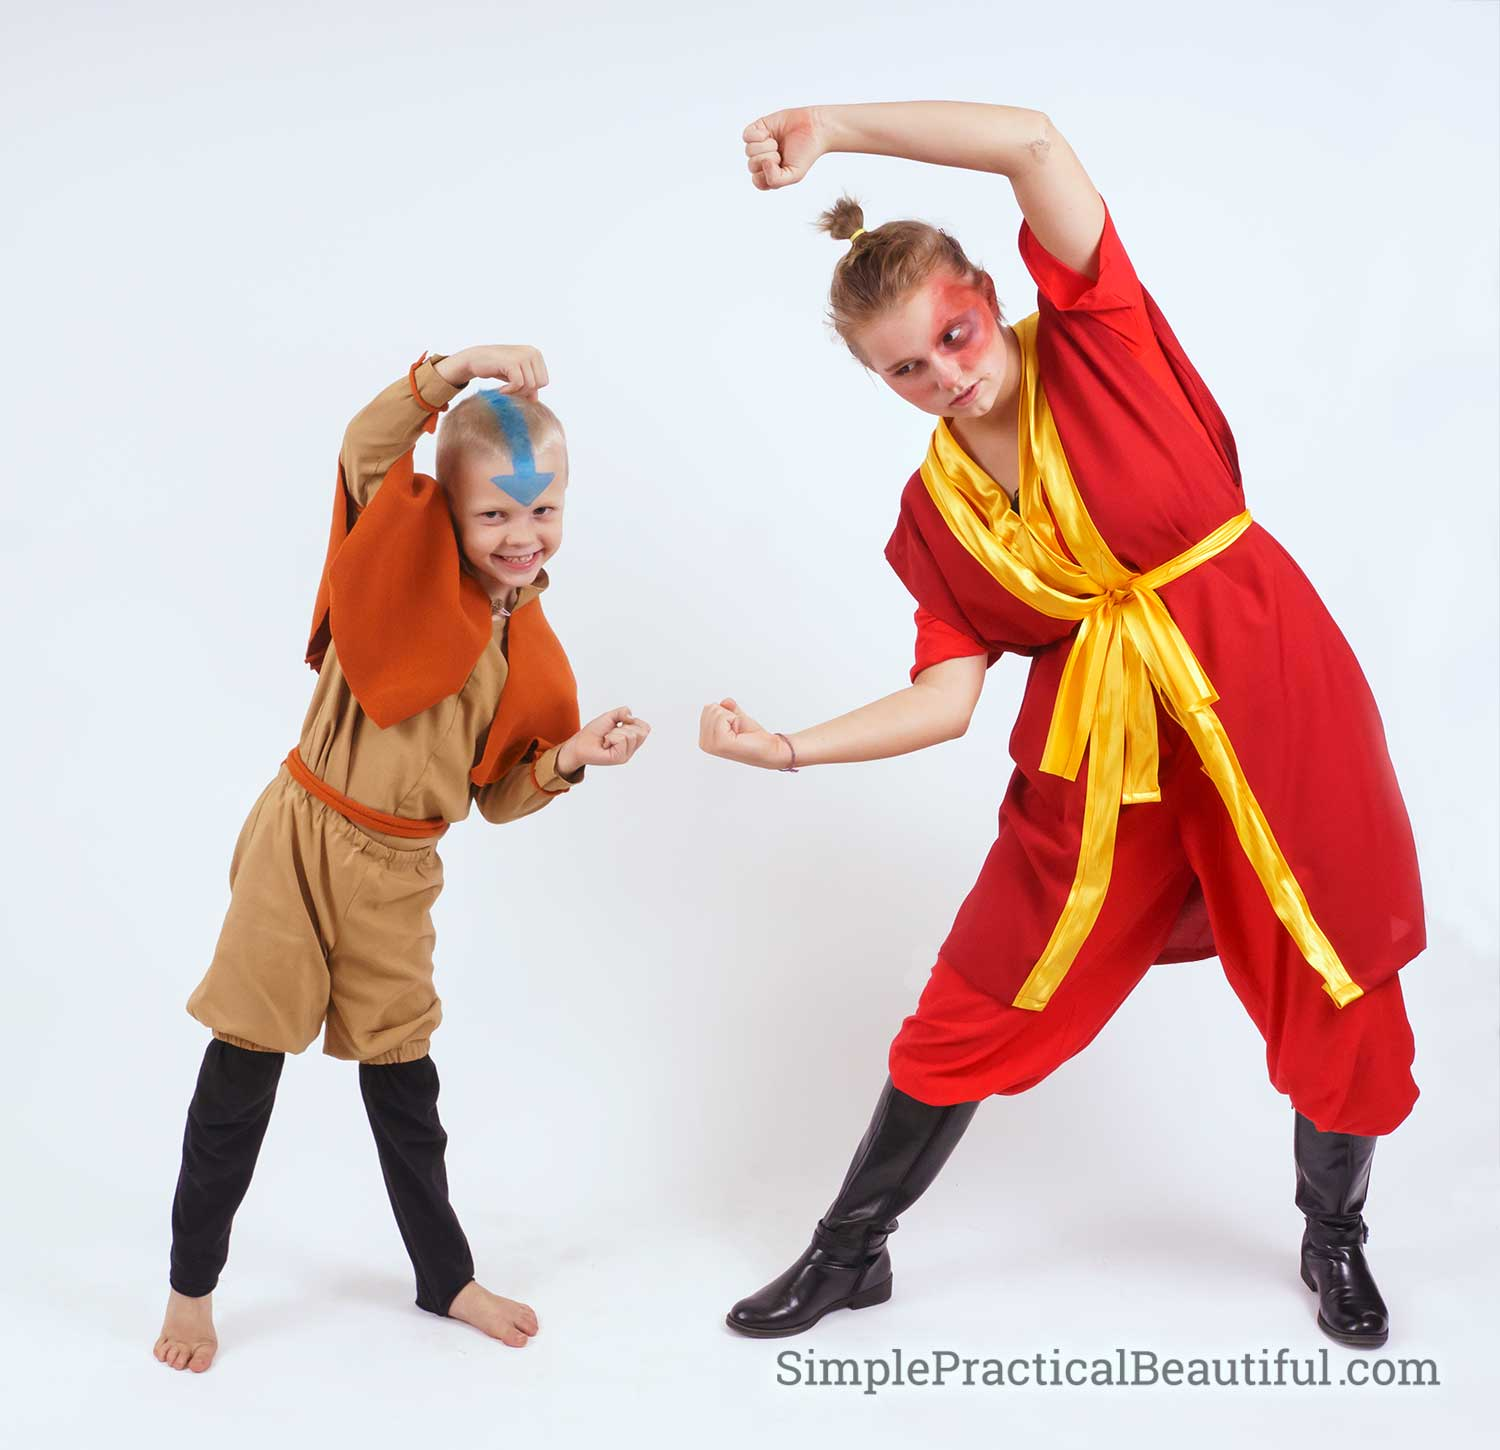 Cosplay of Aang and Zuka performing the Dragon Dance